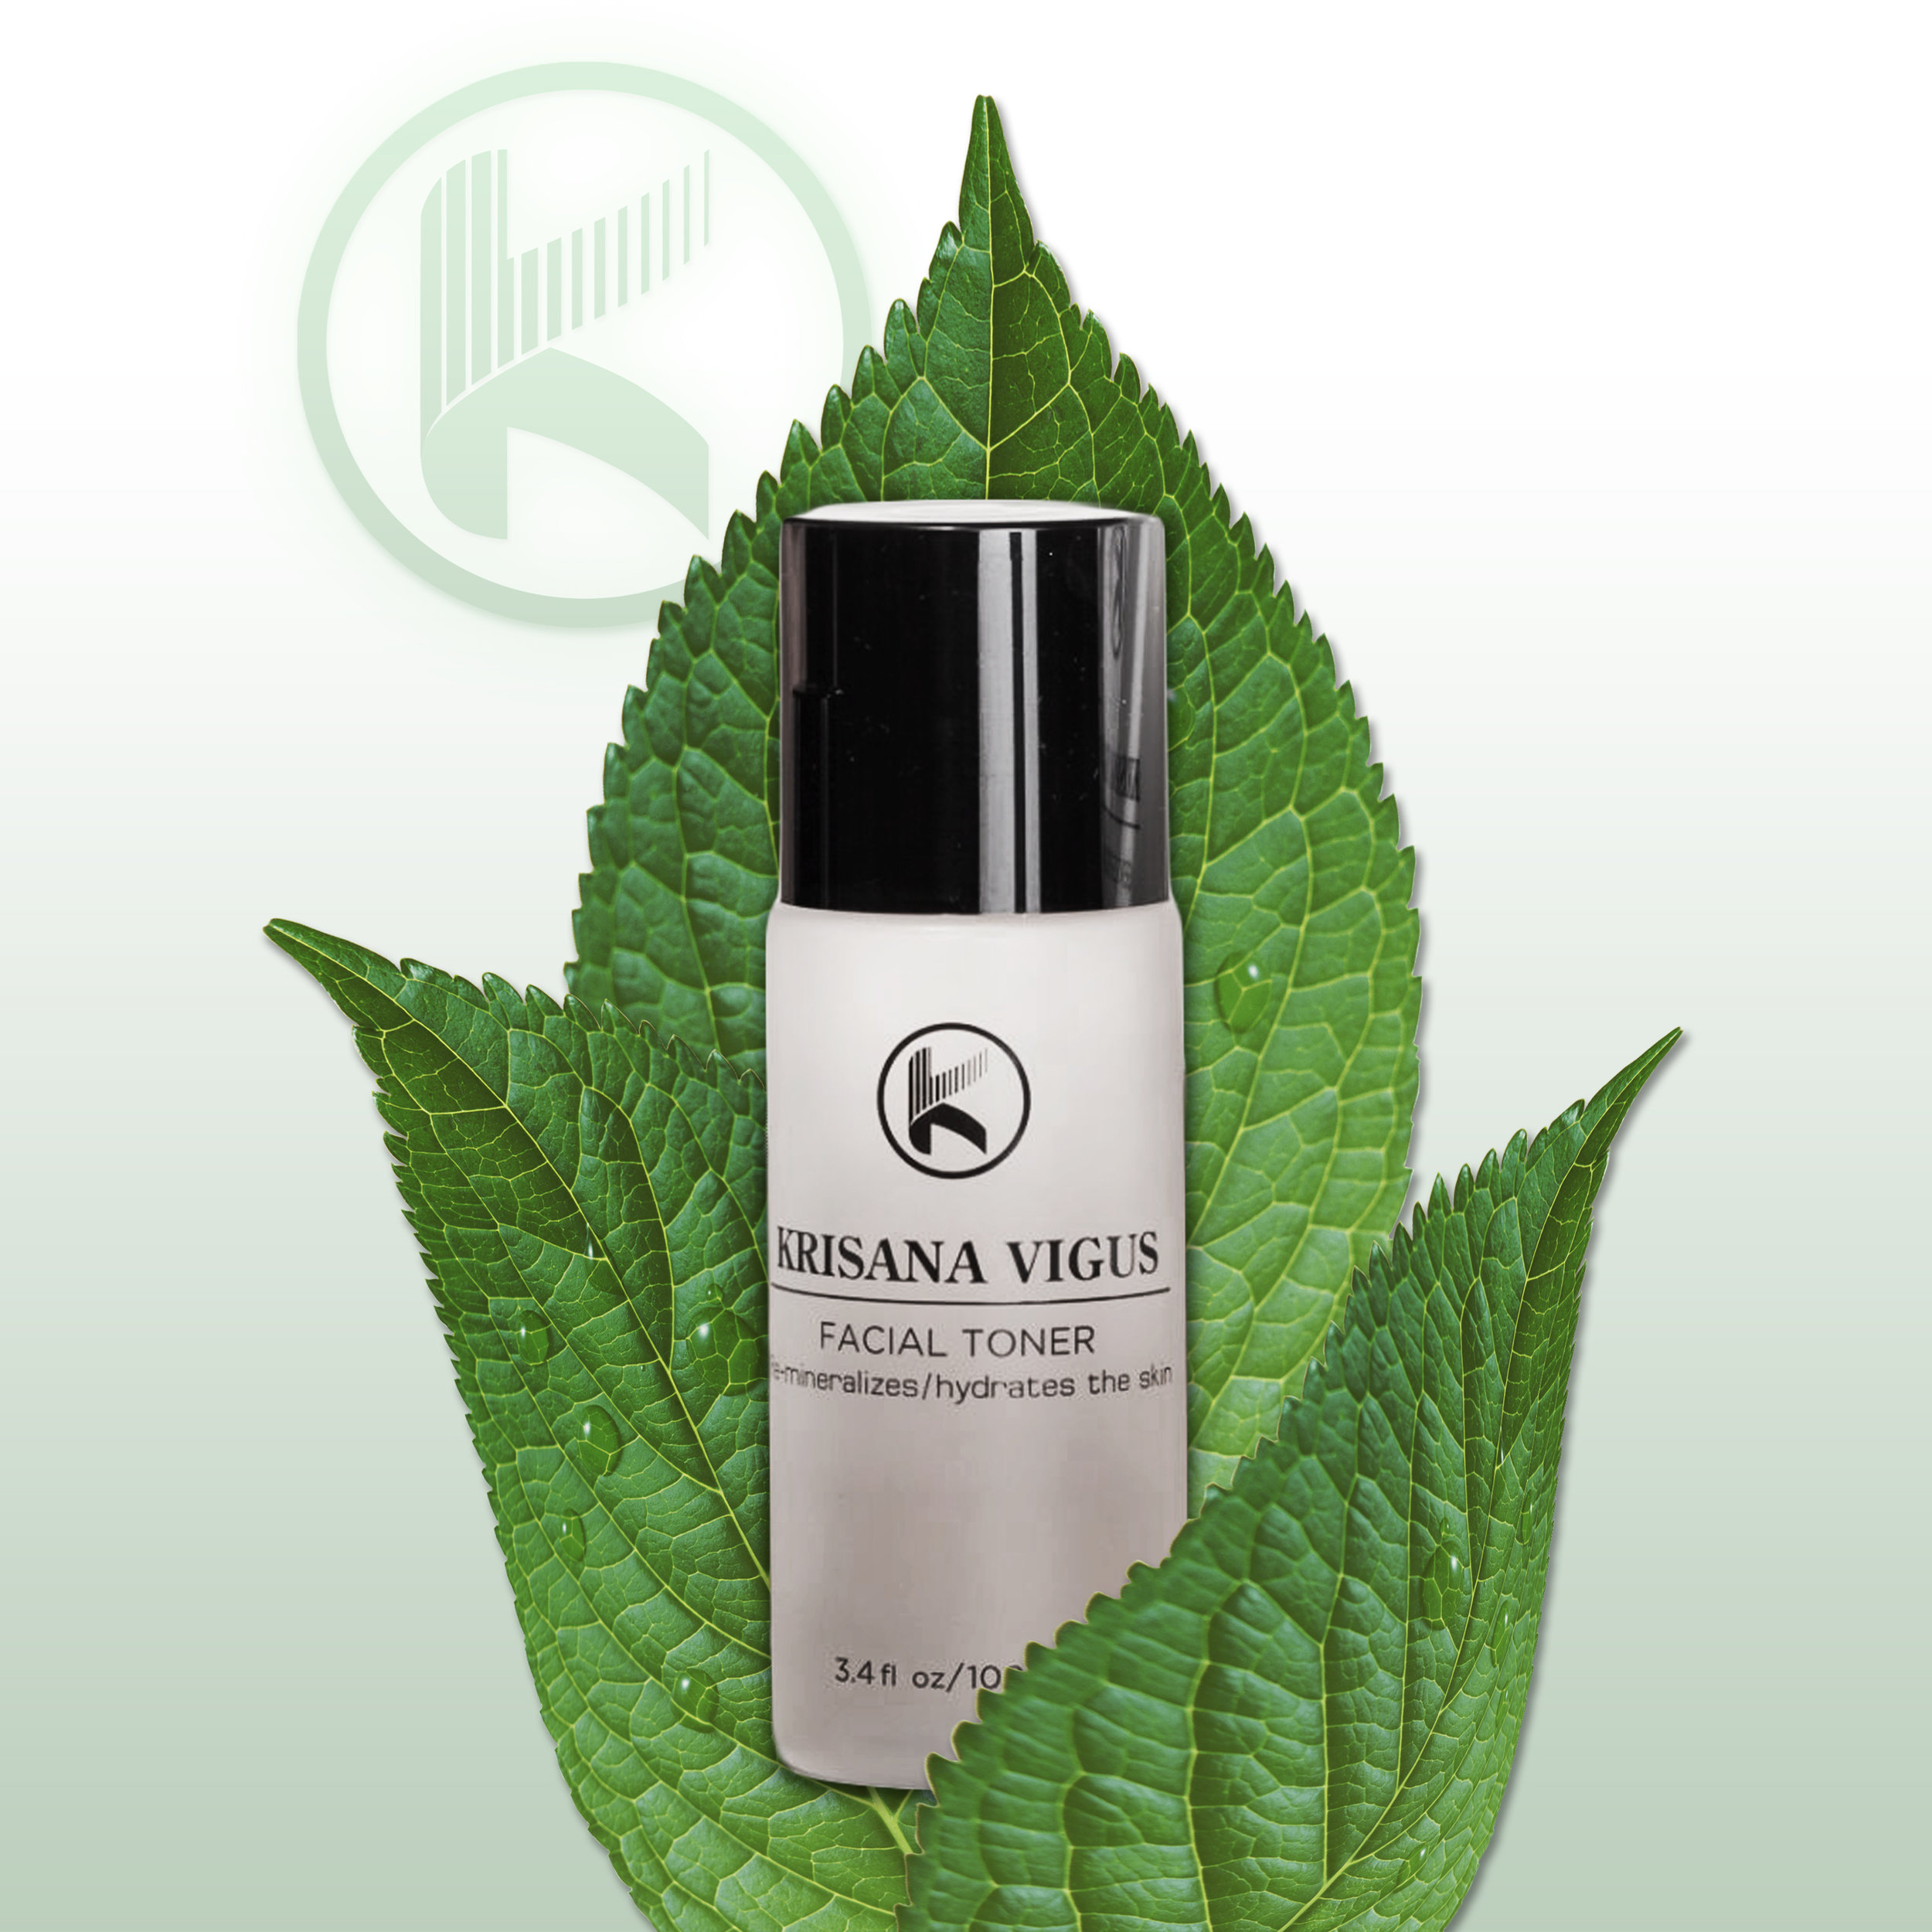 Product Benefits - Reduces the appearance of fine lines and wrinklesClinically proven ingredient to reduce spider vein redness and pigmentation of dark circles under the eyesVisibly lifts and tightens skin for firmness and tonicityRe-mineralizes and hydrates the skinProvides anti-inflammatory and anti-irritant properties